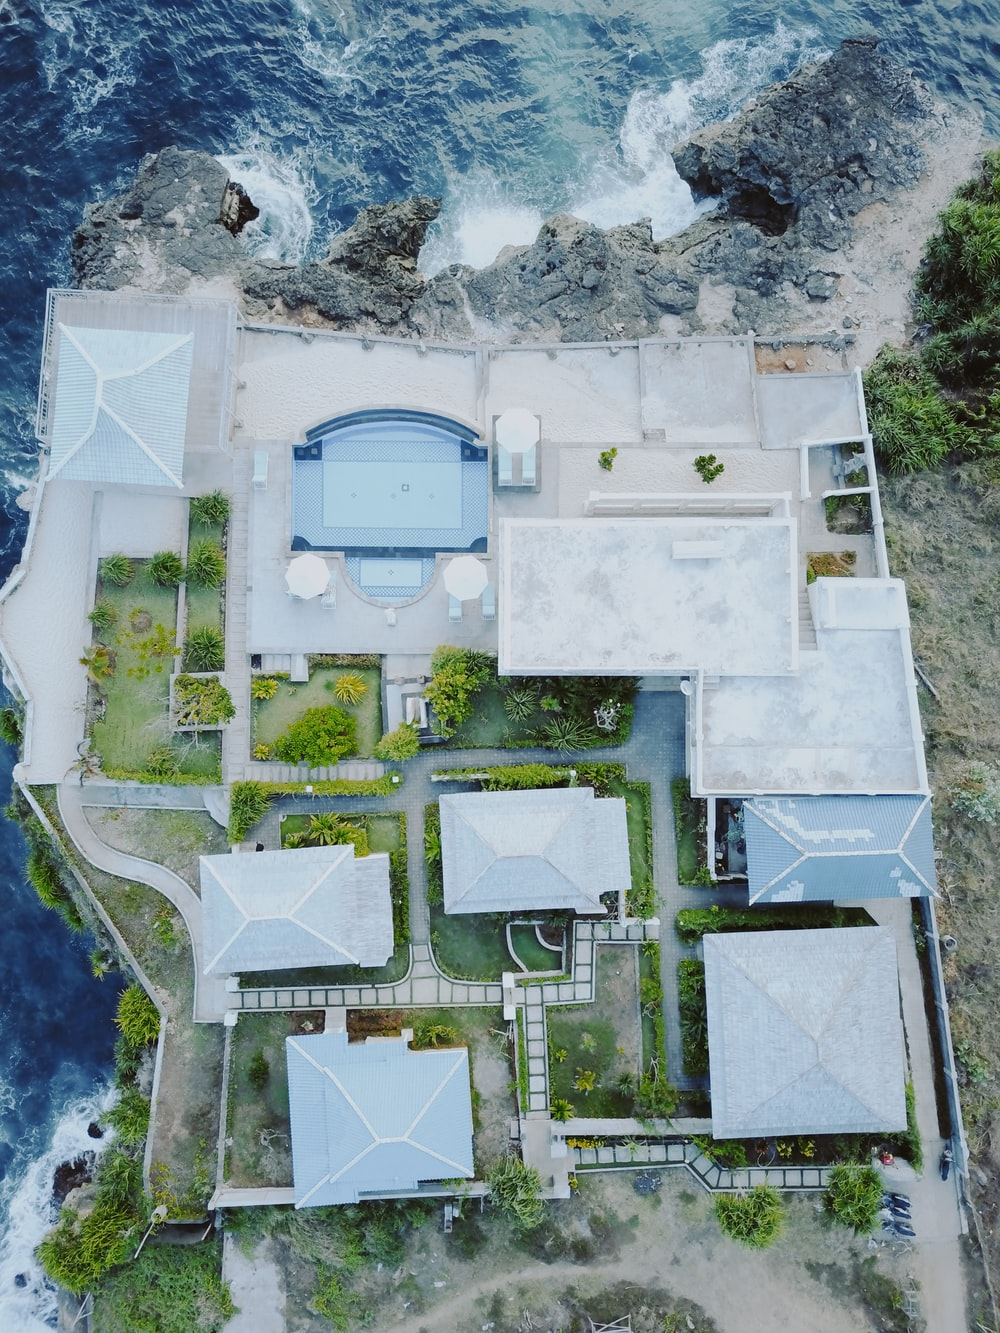 aerial view photography of house beside body of water